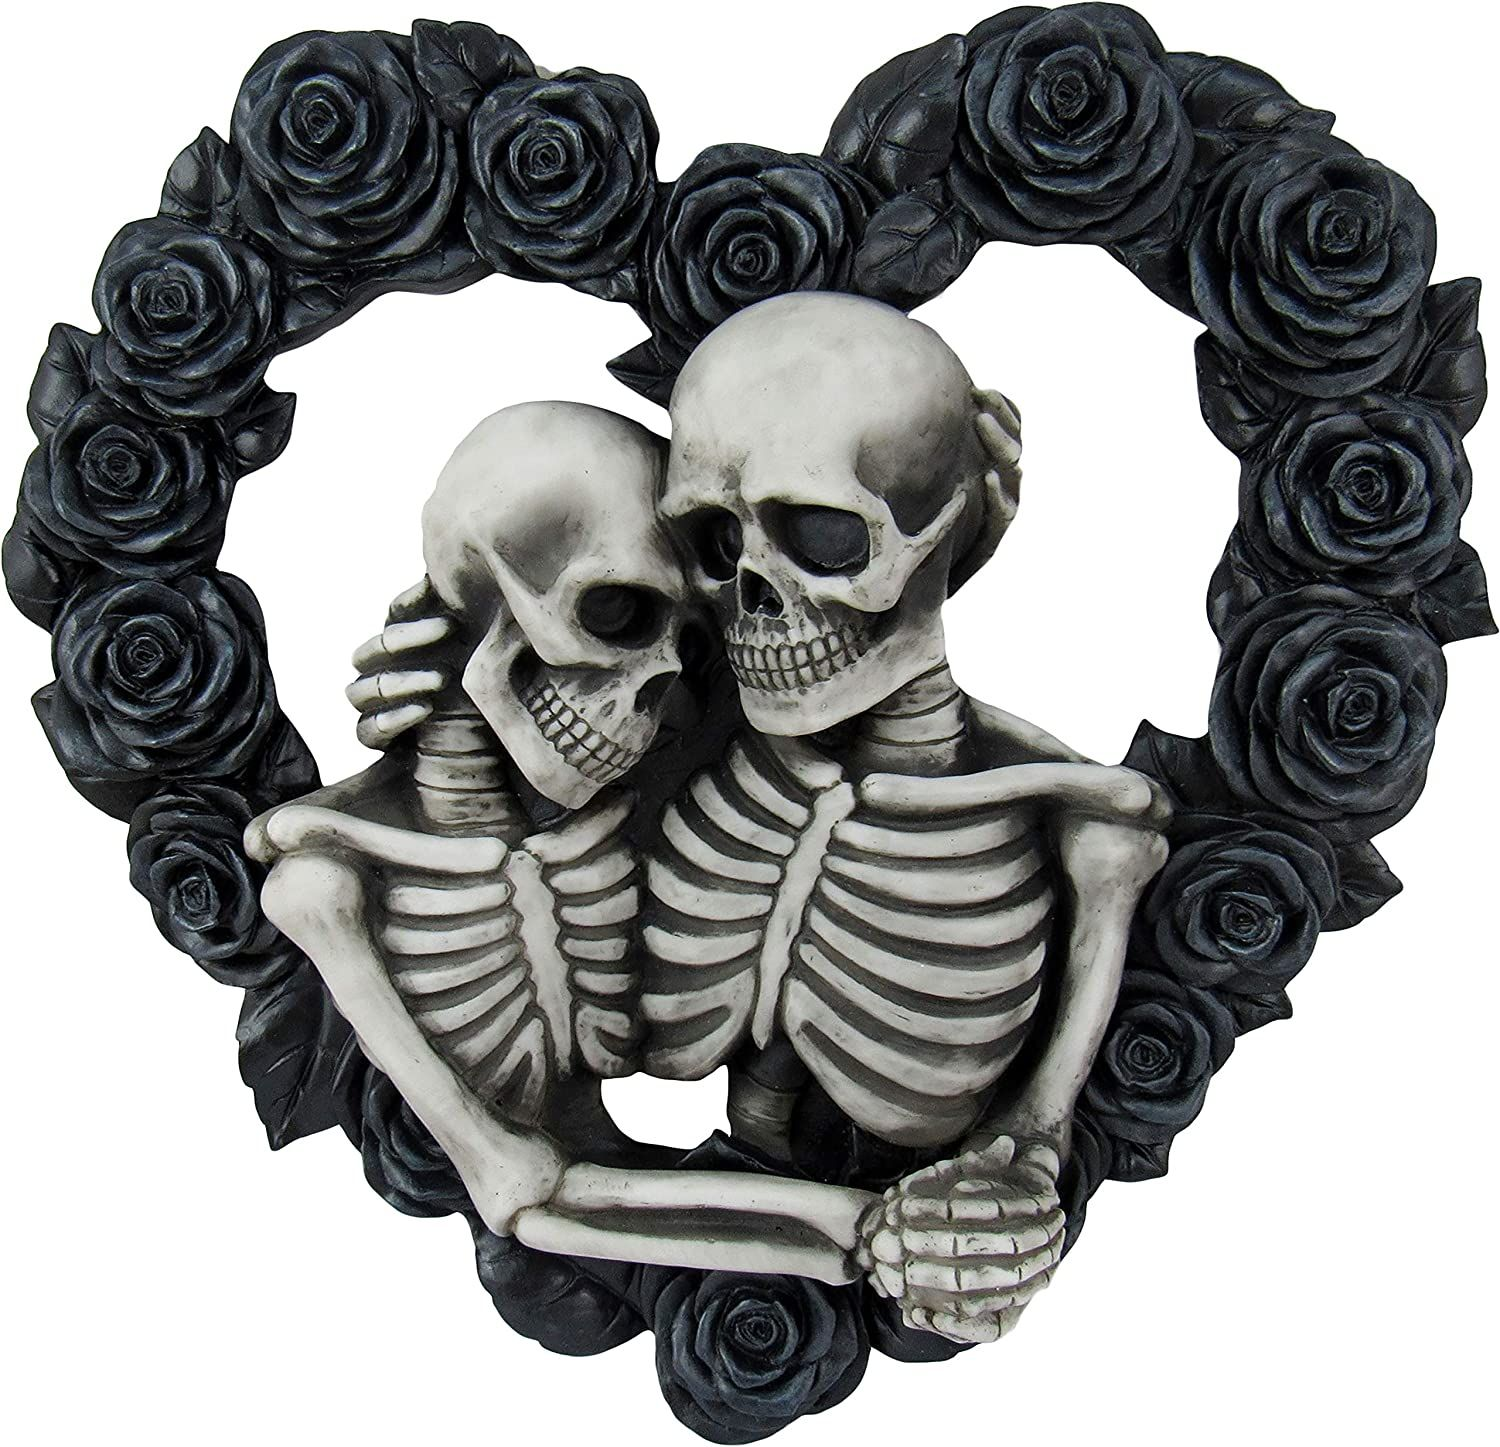 Photo of Ebros Our Love is Eternal Skeleton Lovers on Black Rose Wreath Wall Sculpture